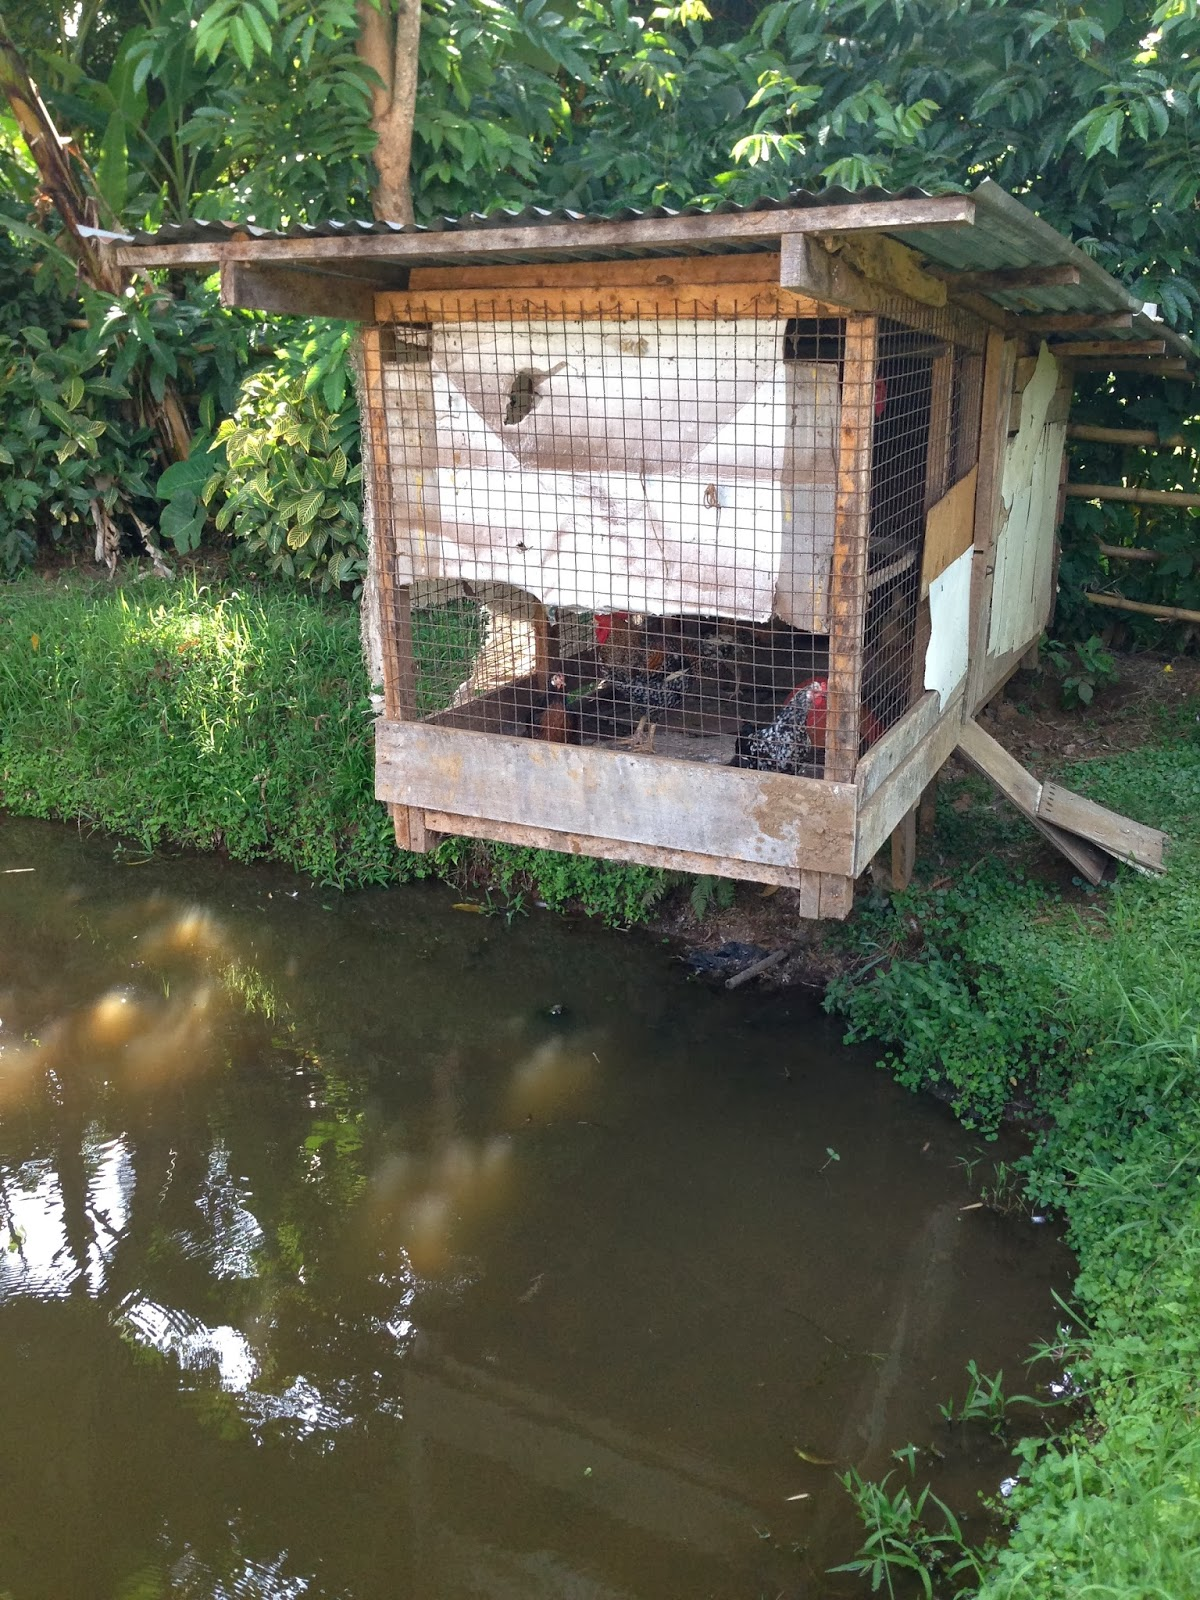 Chicken Coops That Work: 5 Brilliant Ways - Abundant Permaculture